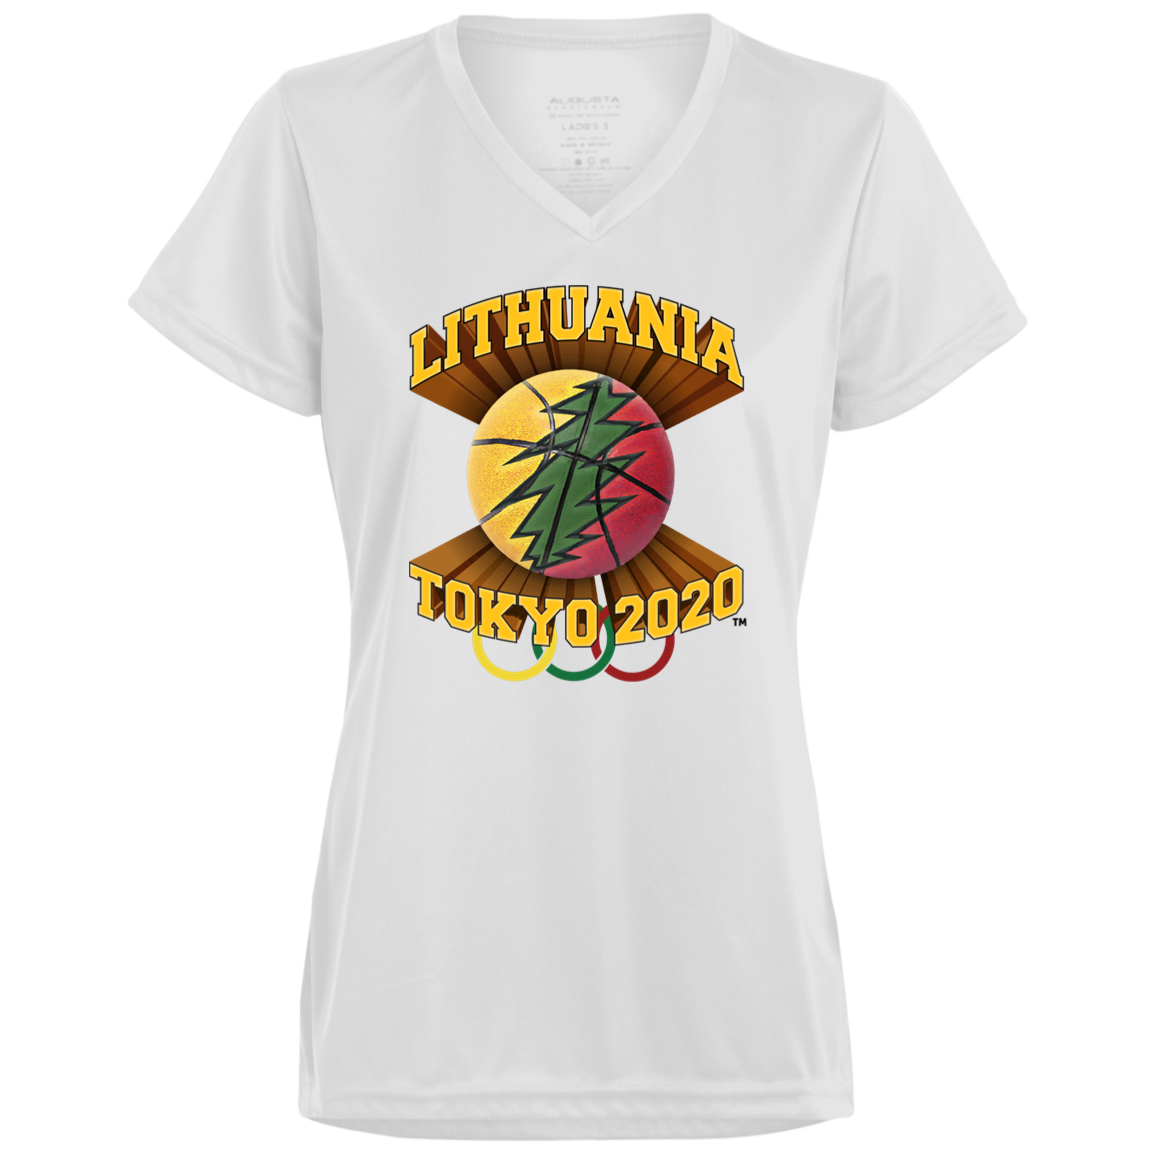 Lithuania Basketball Tokyo 2020 - Gals Wicking V-Neck T-Shirt